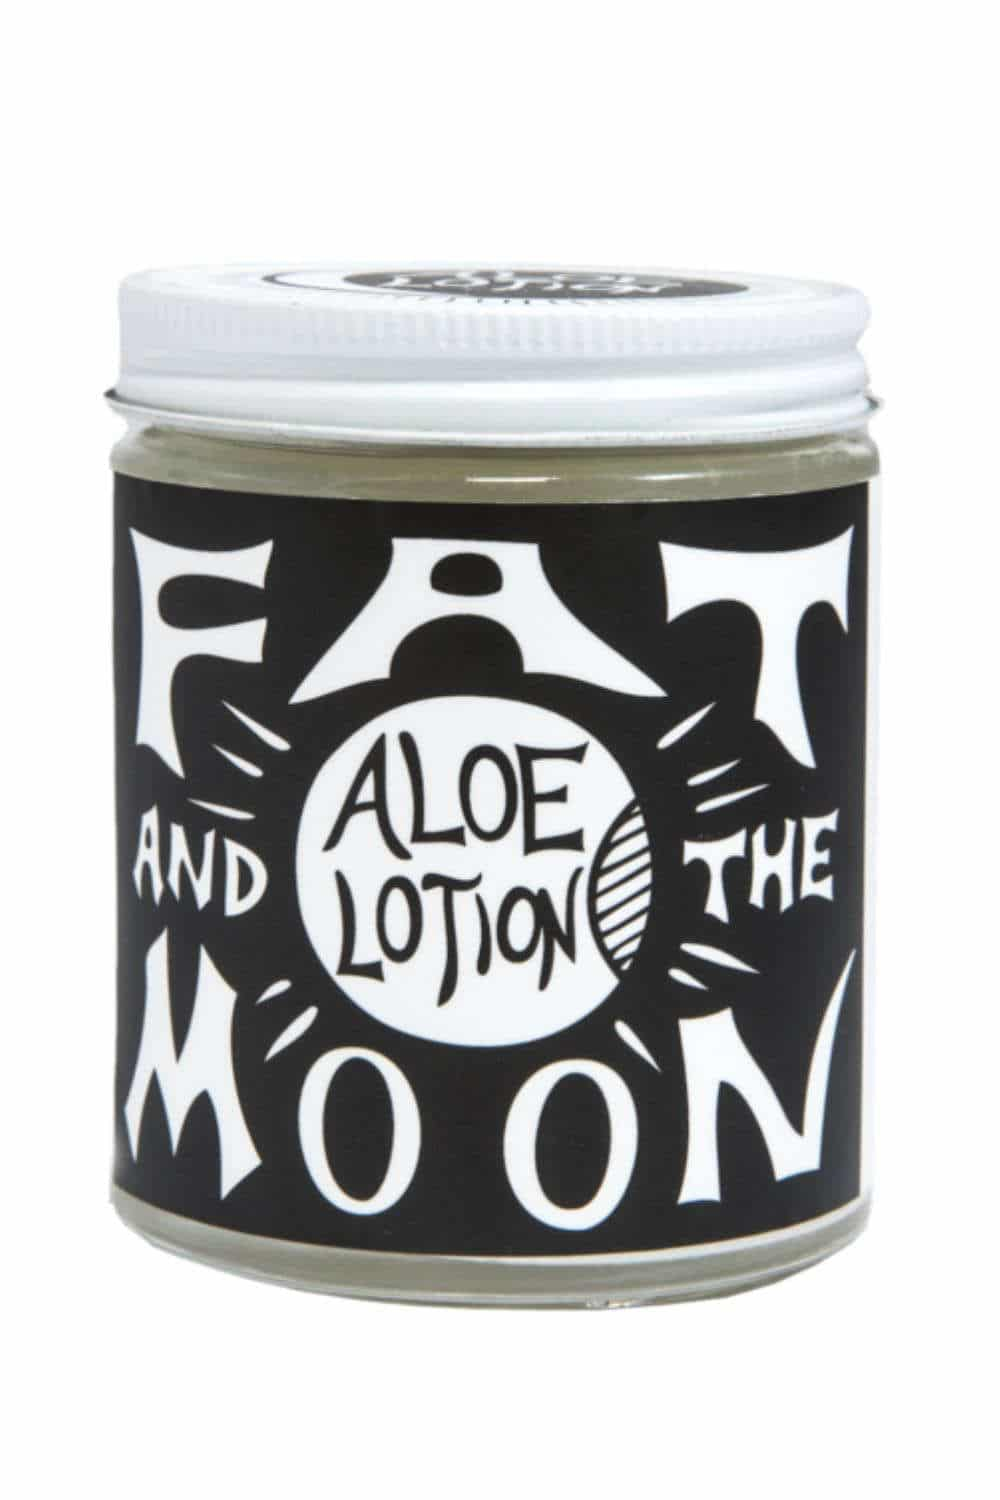 It's pretty important then to to find a cruelty free moisturizer that works for both you and the environment. Which is why we've made a list of our favorites. All in support of positive, healthy and environmentally conscious choices when it comes to buying the best body care products. Image by Fat and the Moon #crueltyfreemoisturizer #sustainablejungle